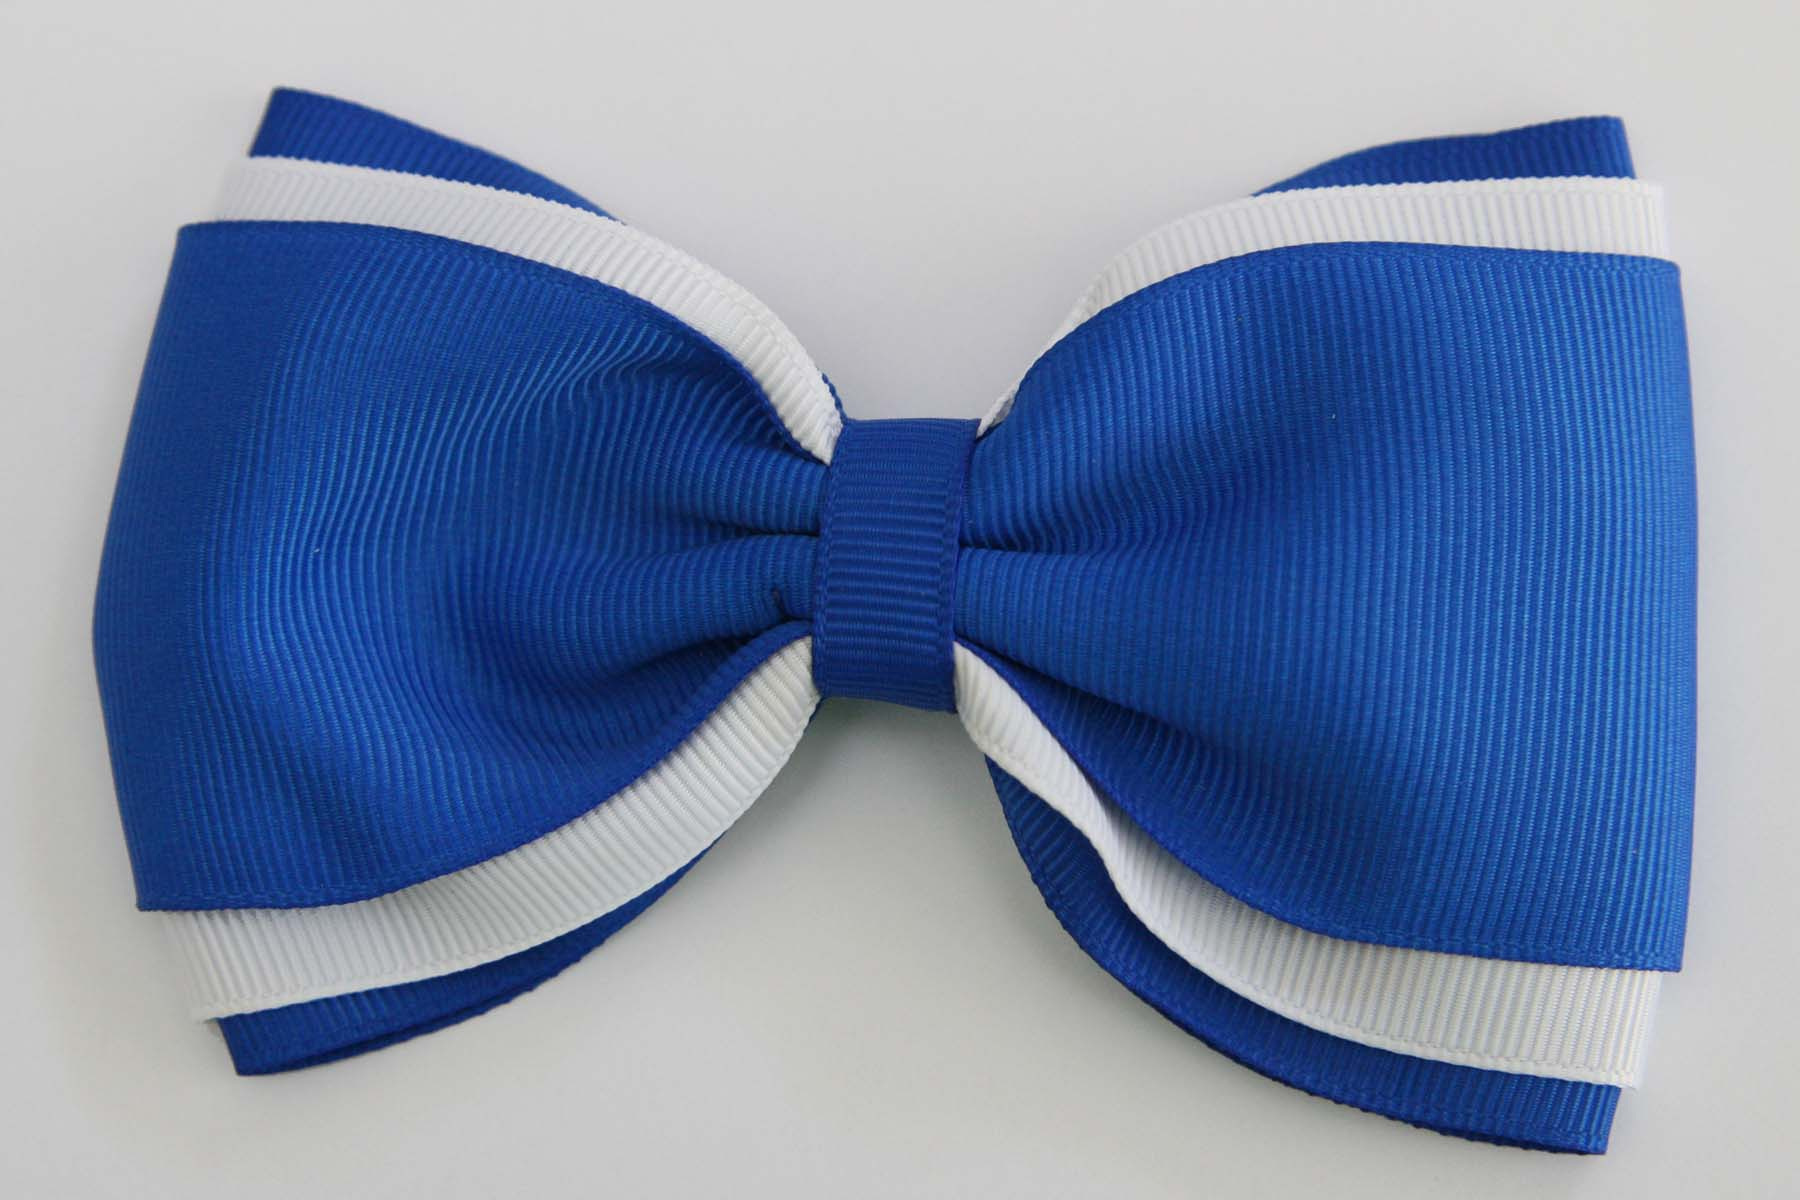 MTCC Triple-layered Mega Bow - Royal Blue & White